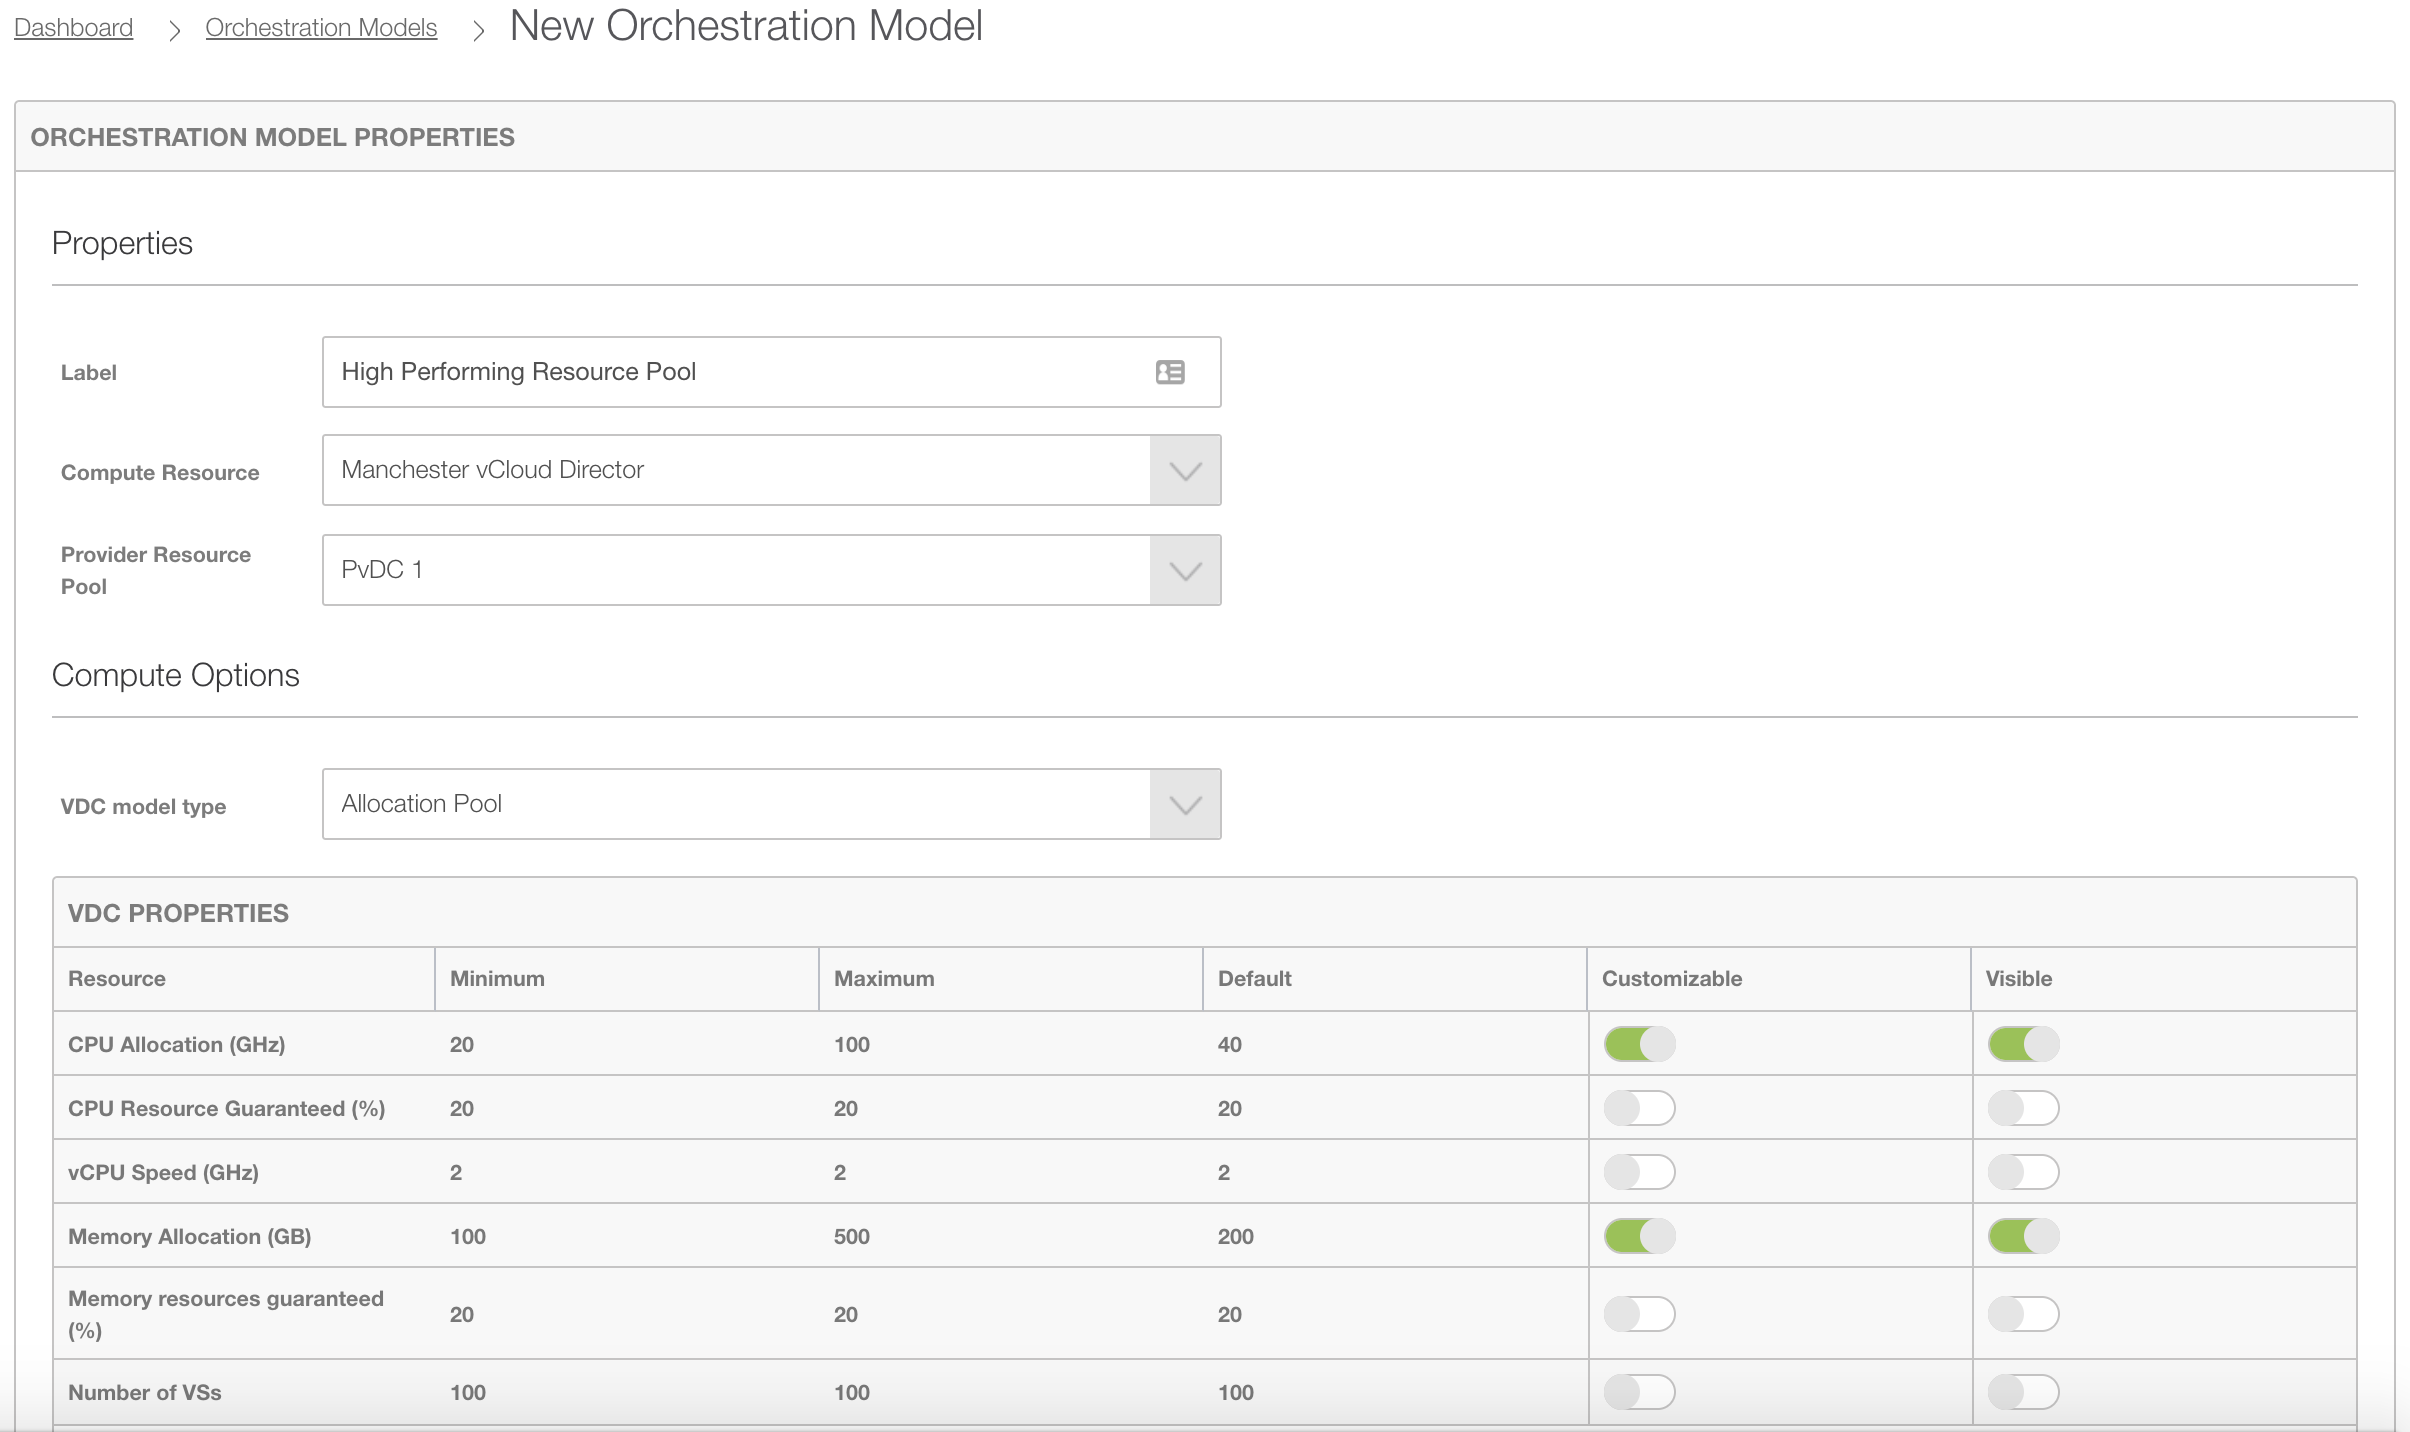 OnApp orchestration models give you much more control over resource allocation for vCloud Director